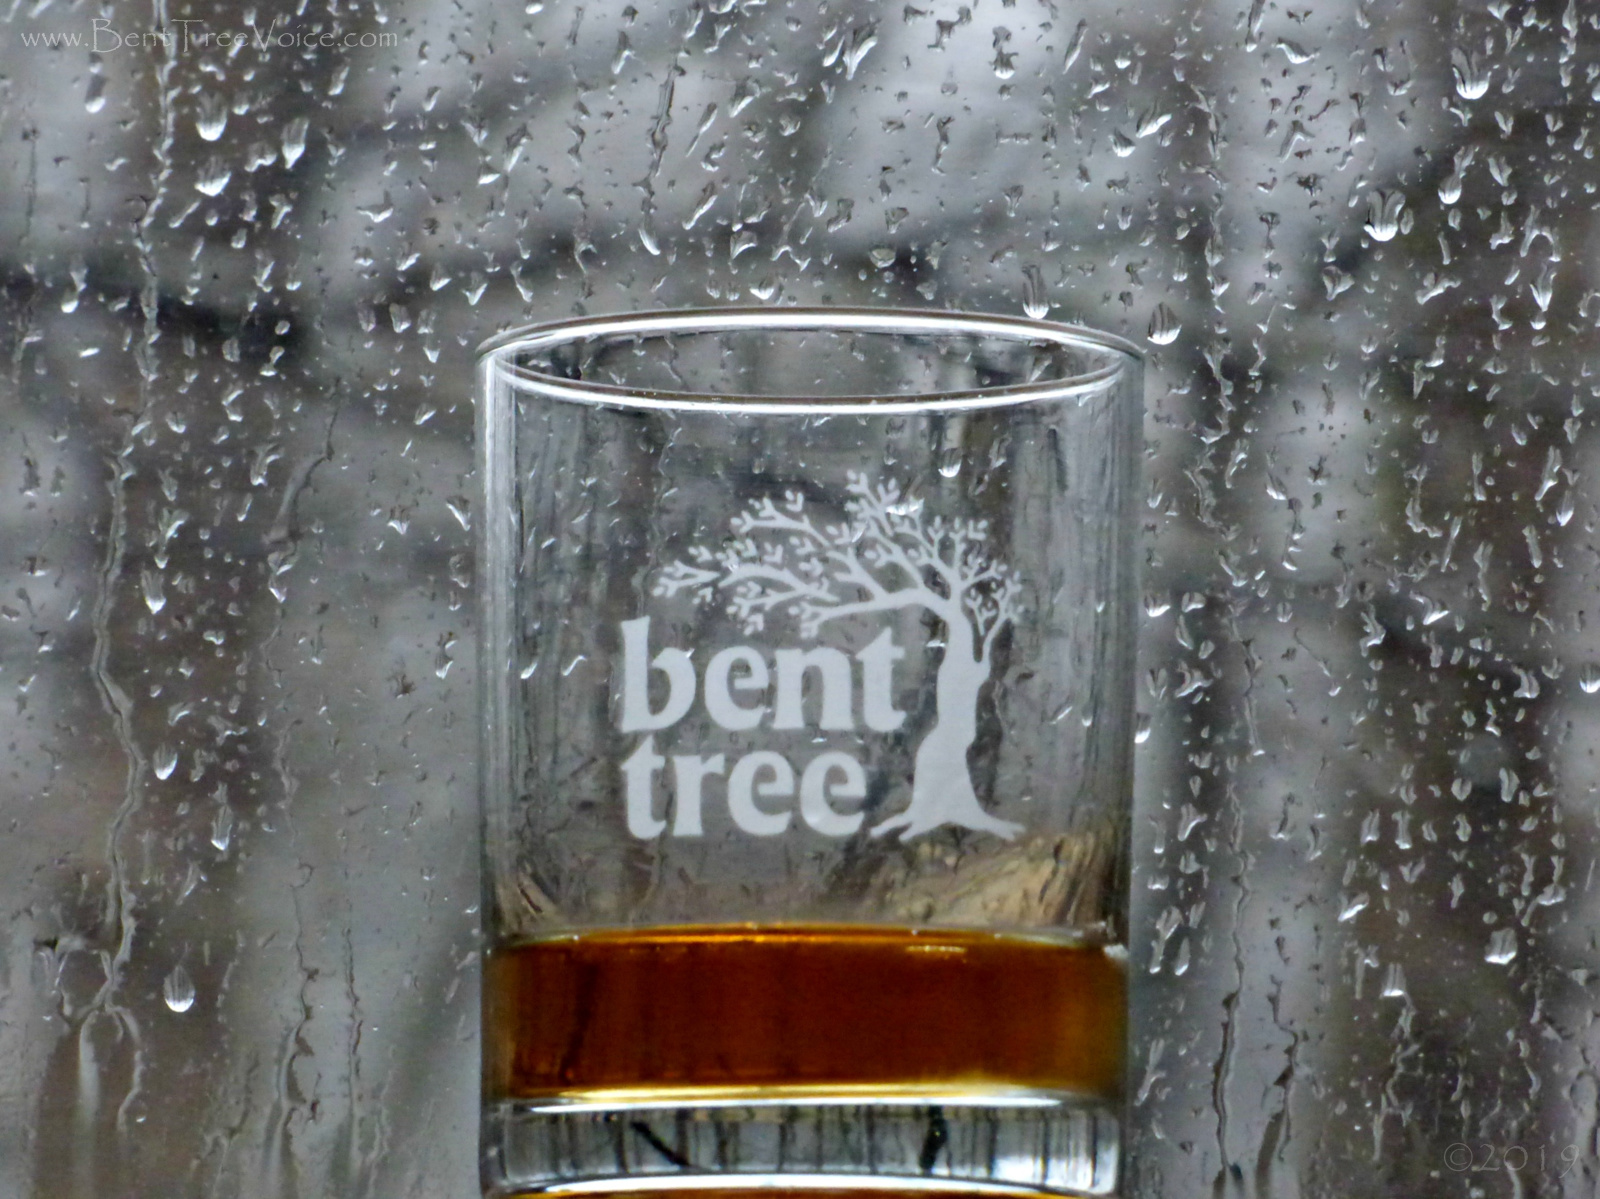 February 19, 2019 - a rainy day in Bent Tree